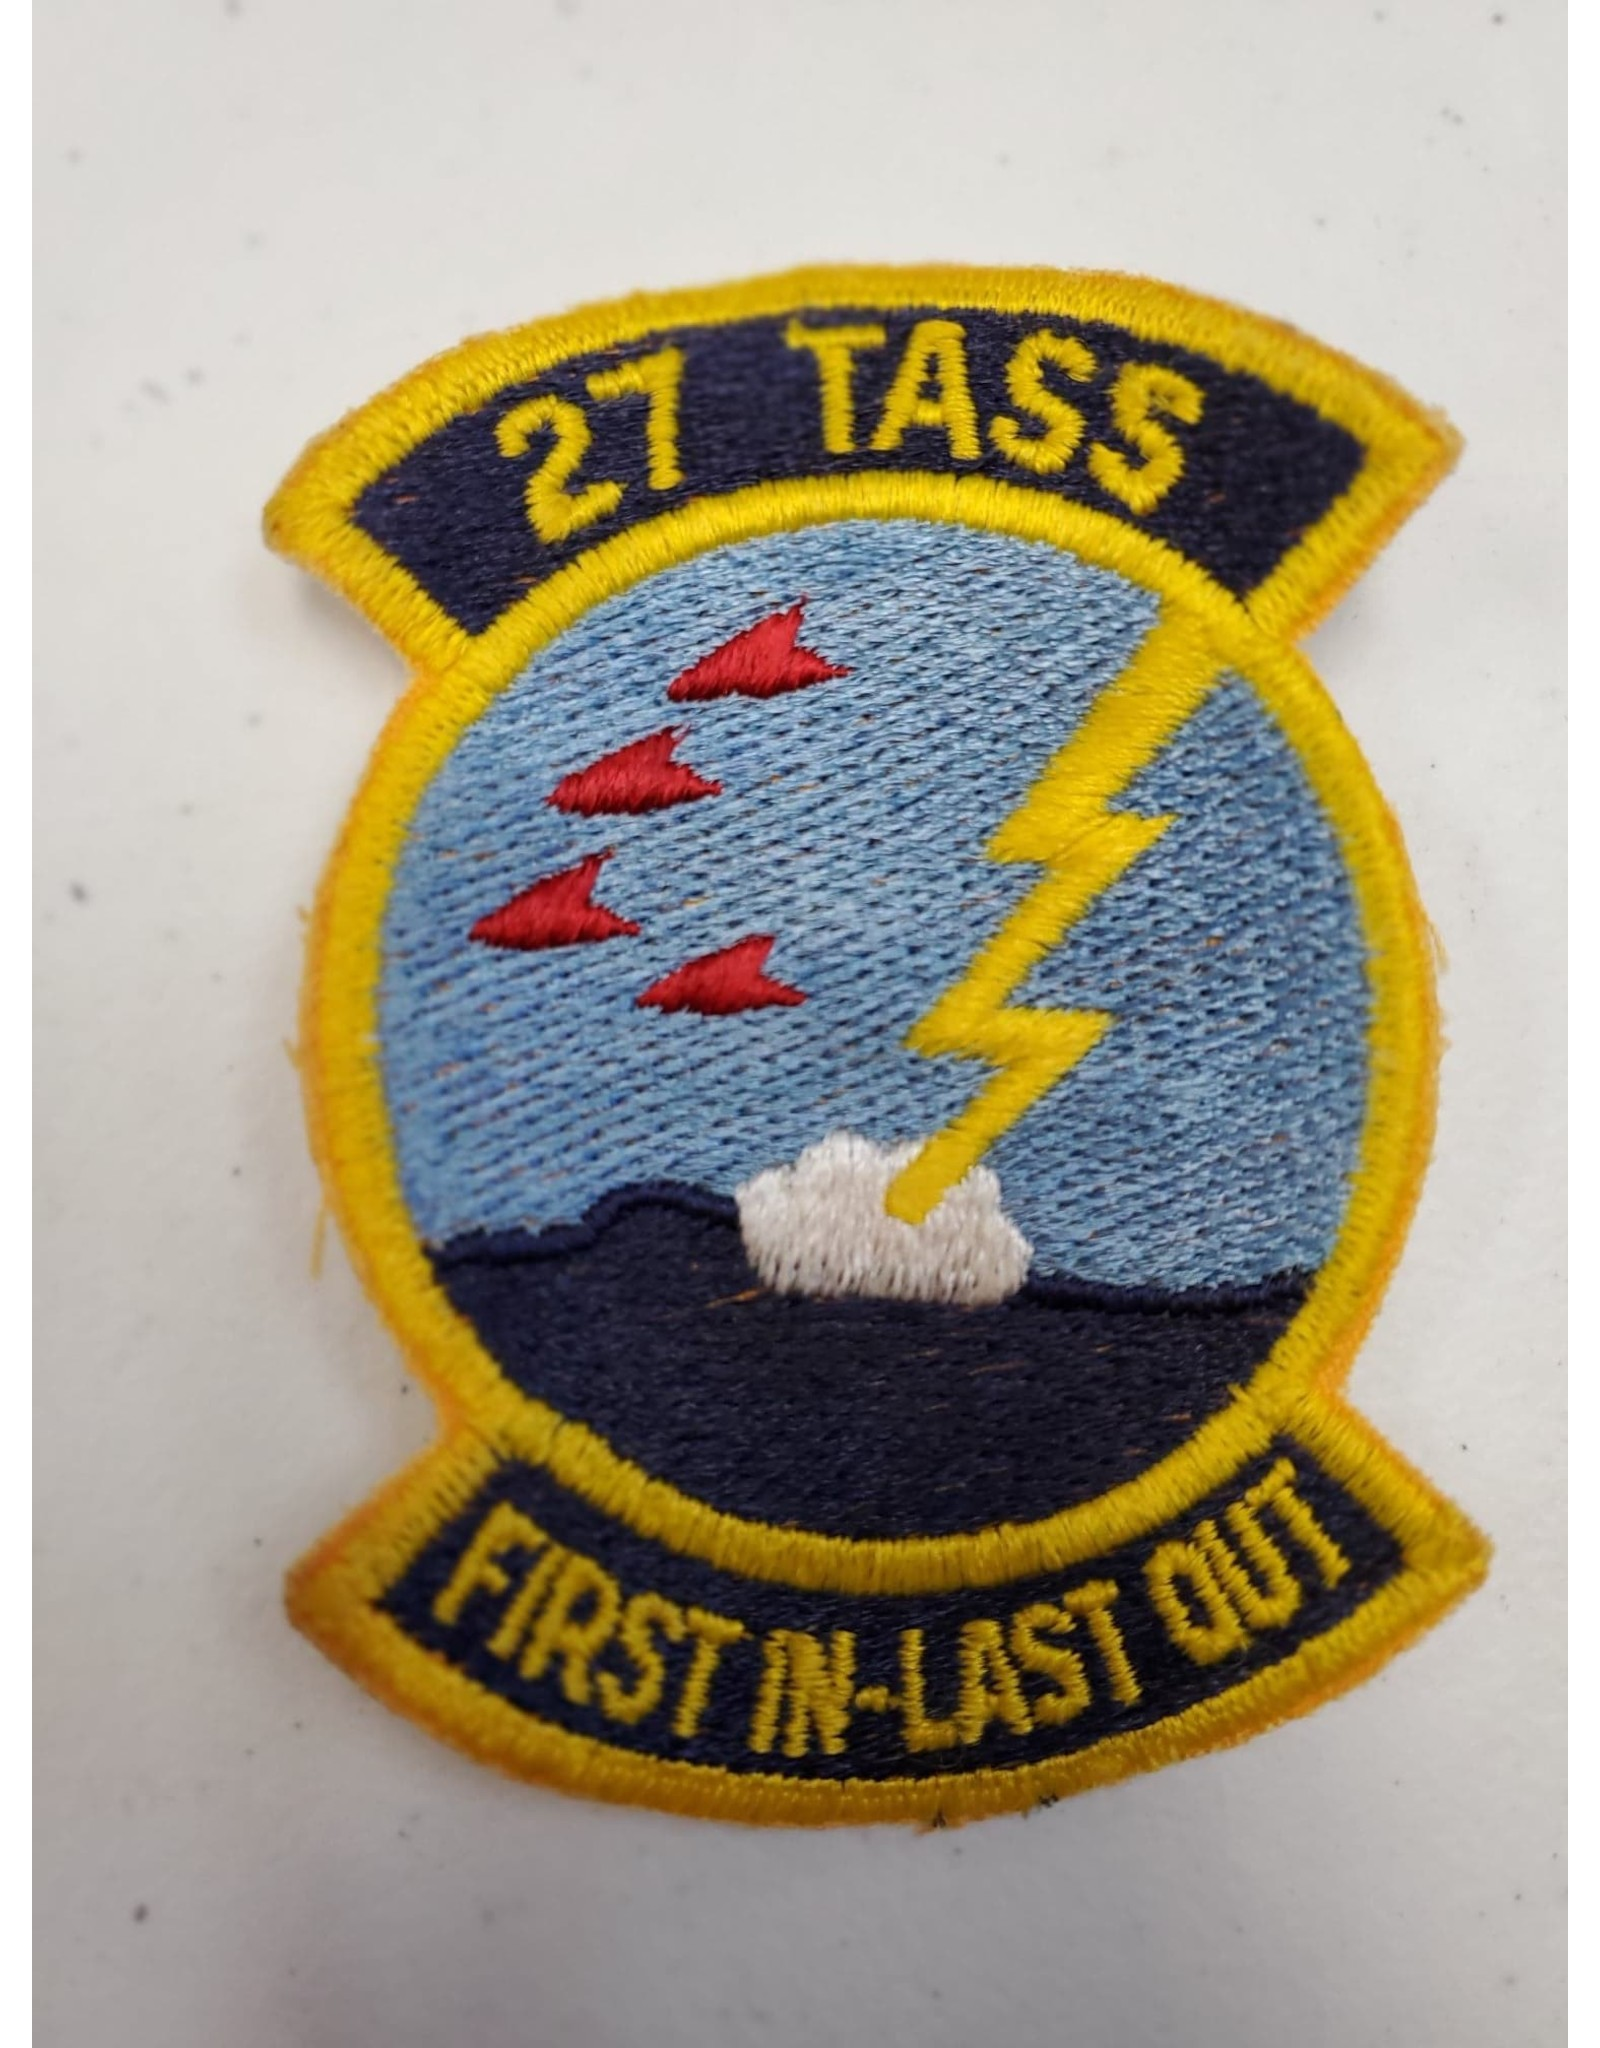 27 Tass First In-Last Out Patch